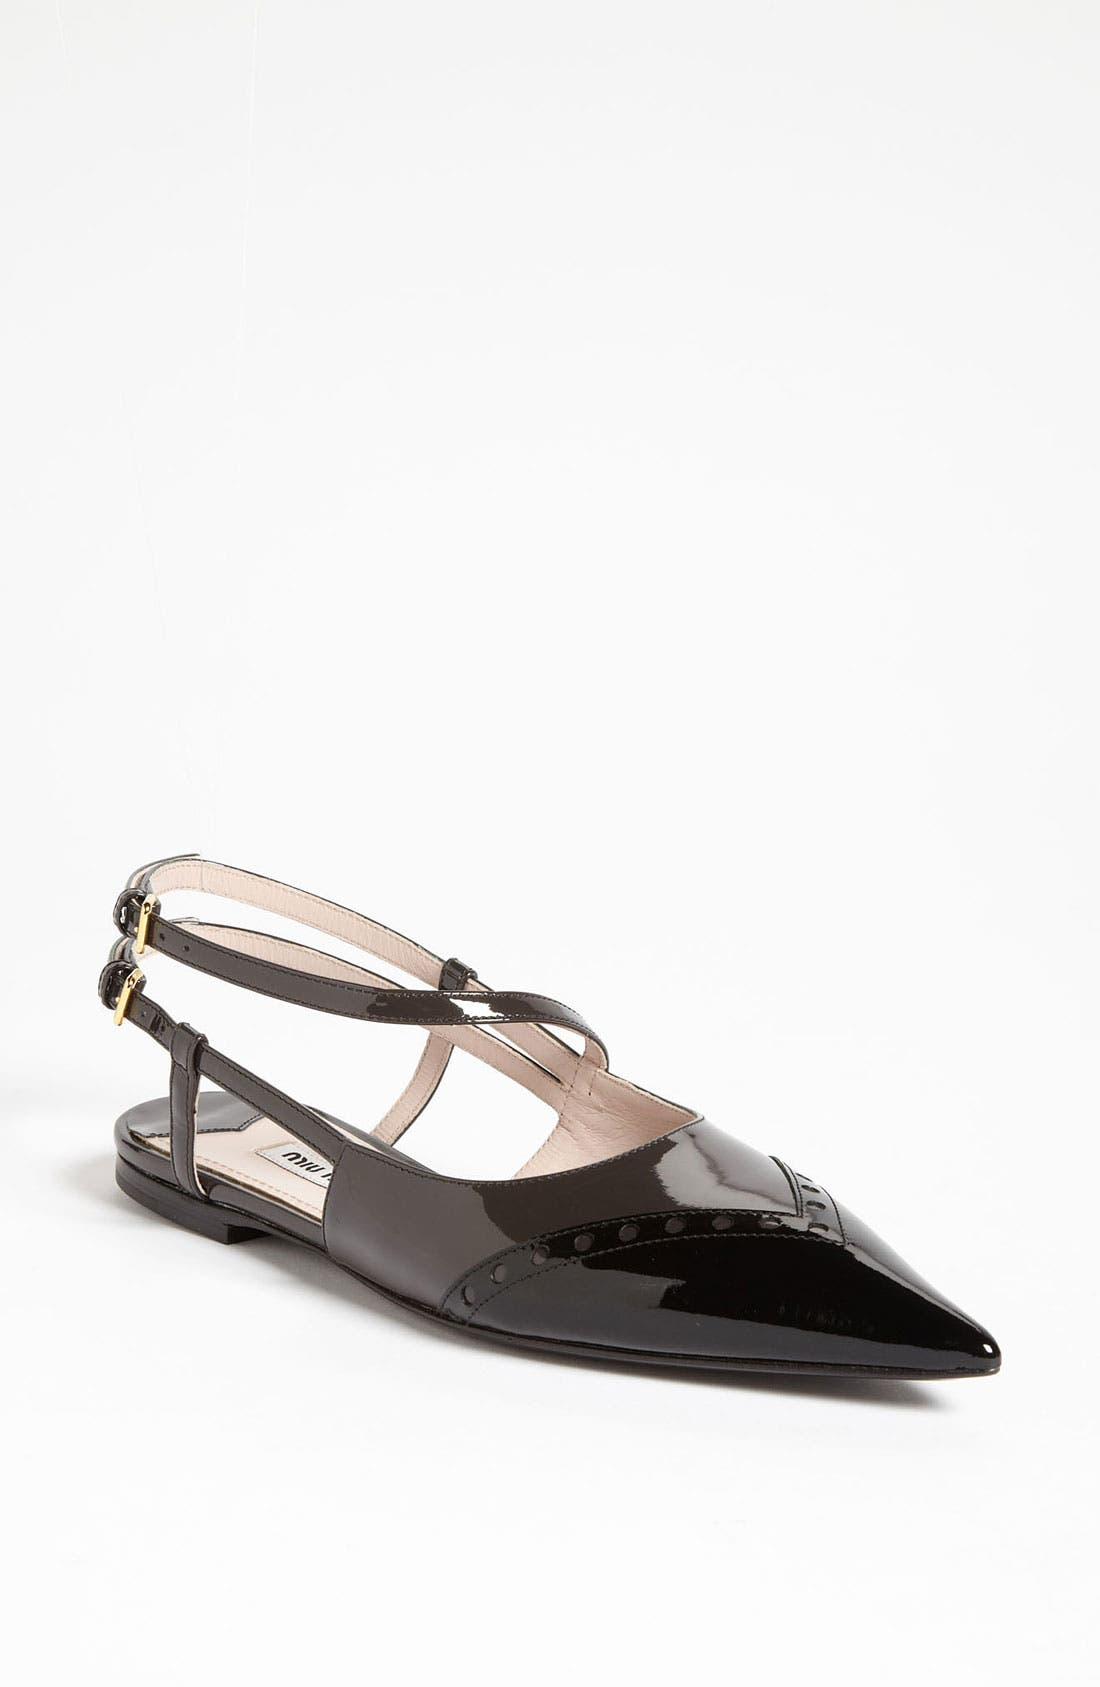 Alternate Image 1 Selected - Miu Miu Pointed Toe Ballet Flat (Nordstrom Exclusive)